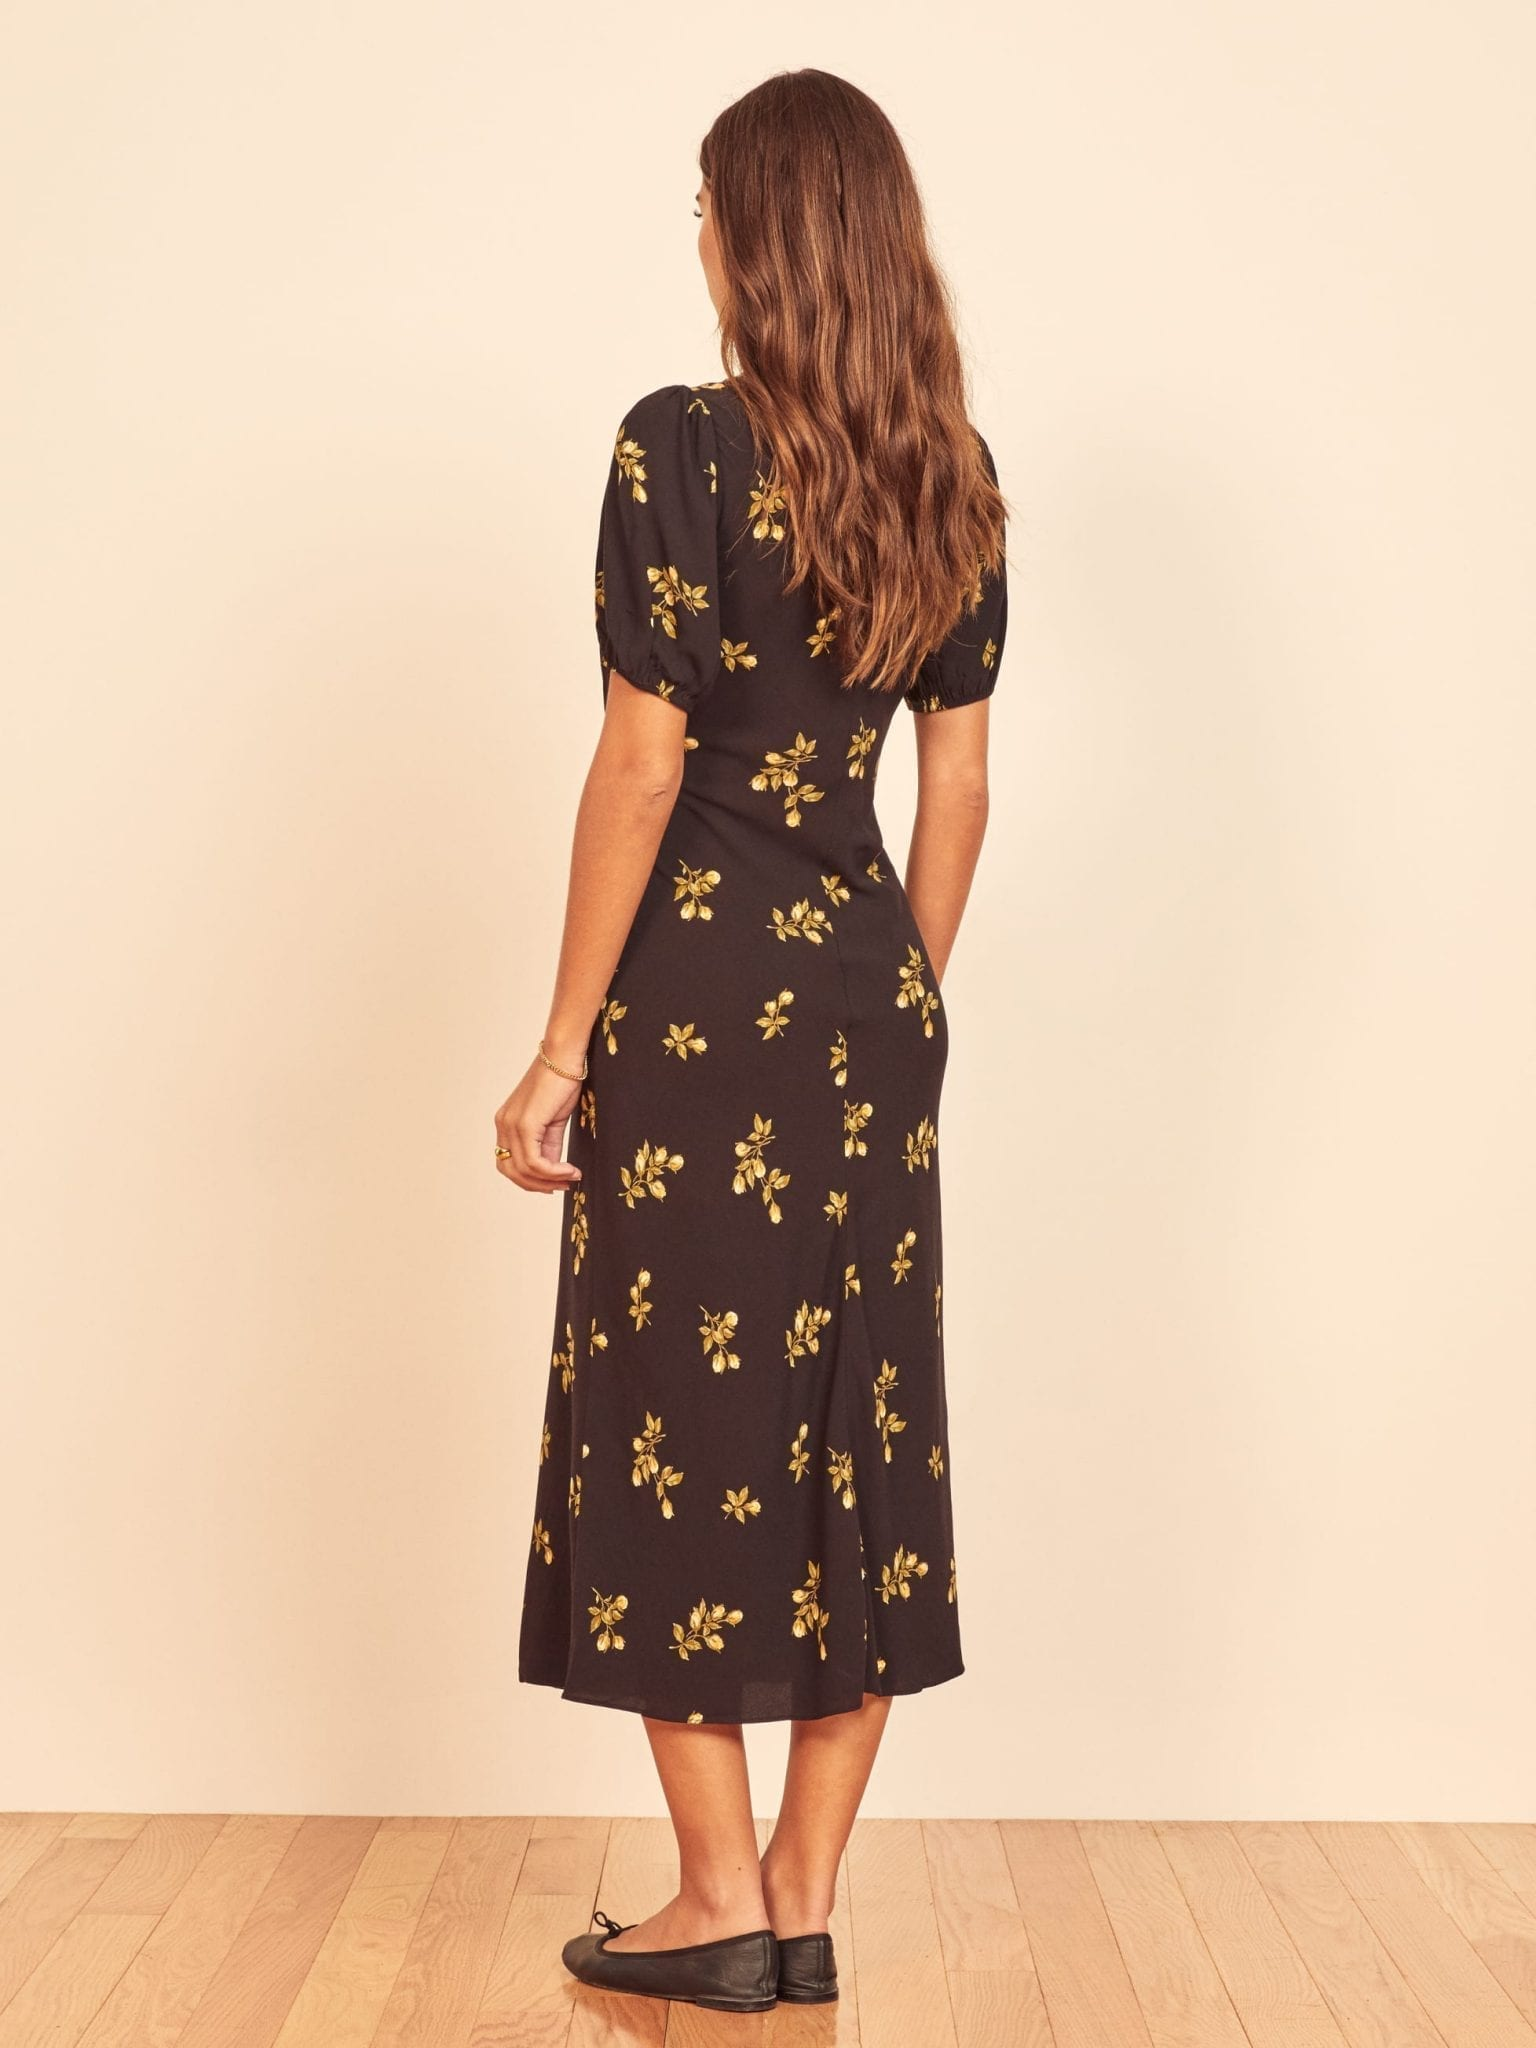 REFORMATION Fleurs Dress